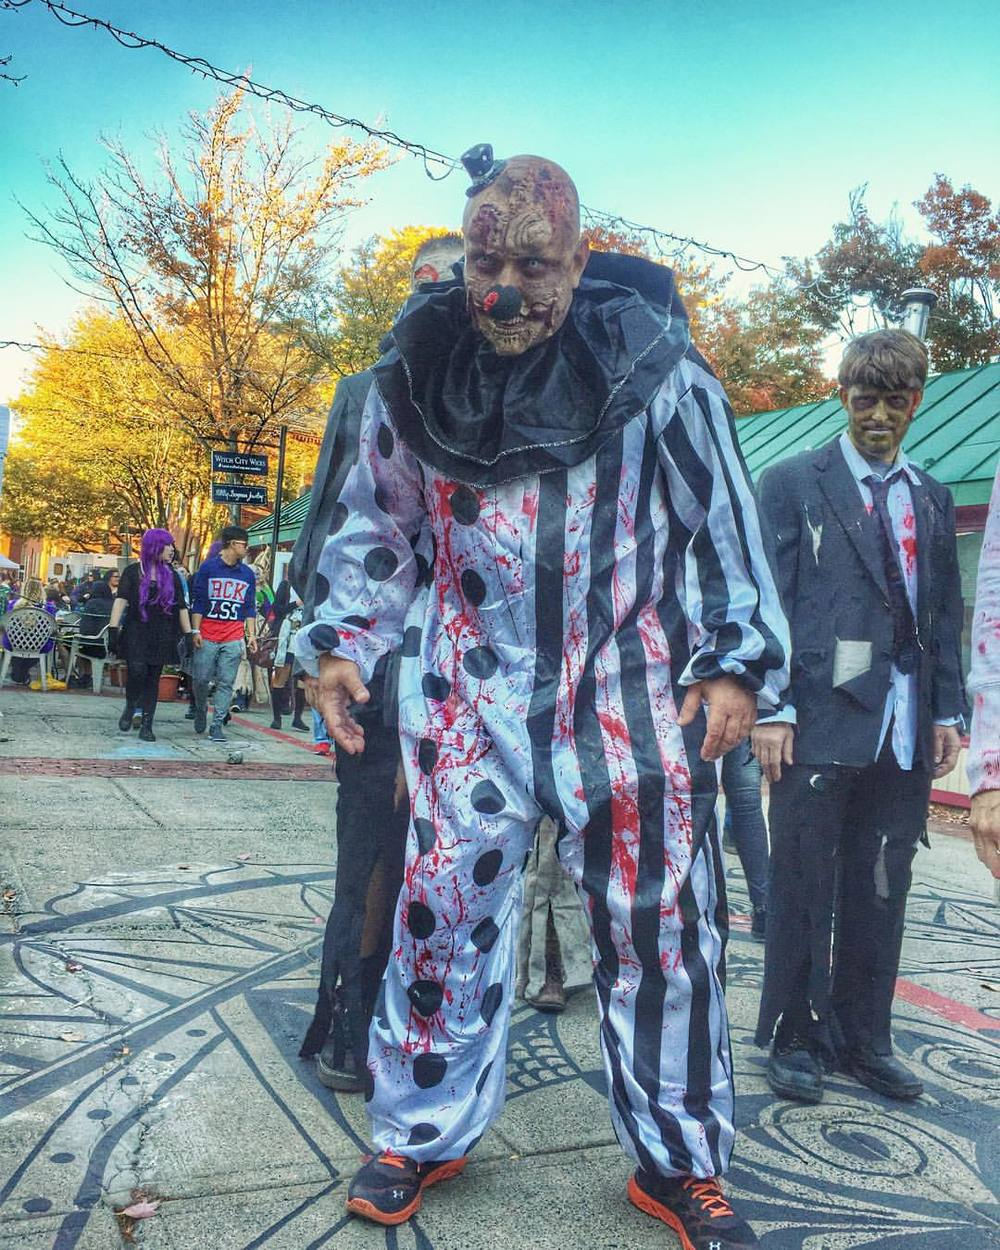 creative-salem: Oh hey there big fella #zombiewalk #hauntedhappenings2015 #salemma #creativesalem (at Artists Row-Salem MA) Aw, man. I can't believe I missed the zombie walk. Next year, I'm there. A.M.